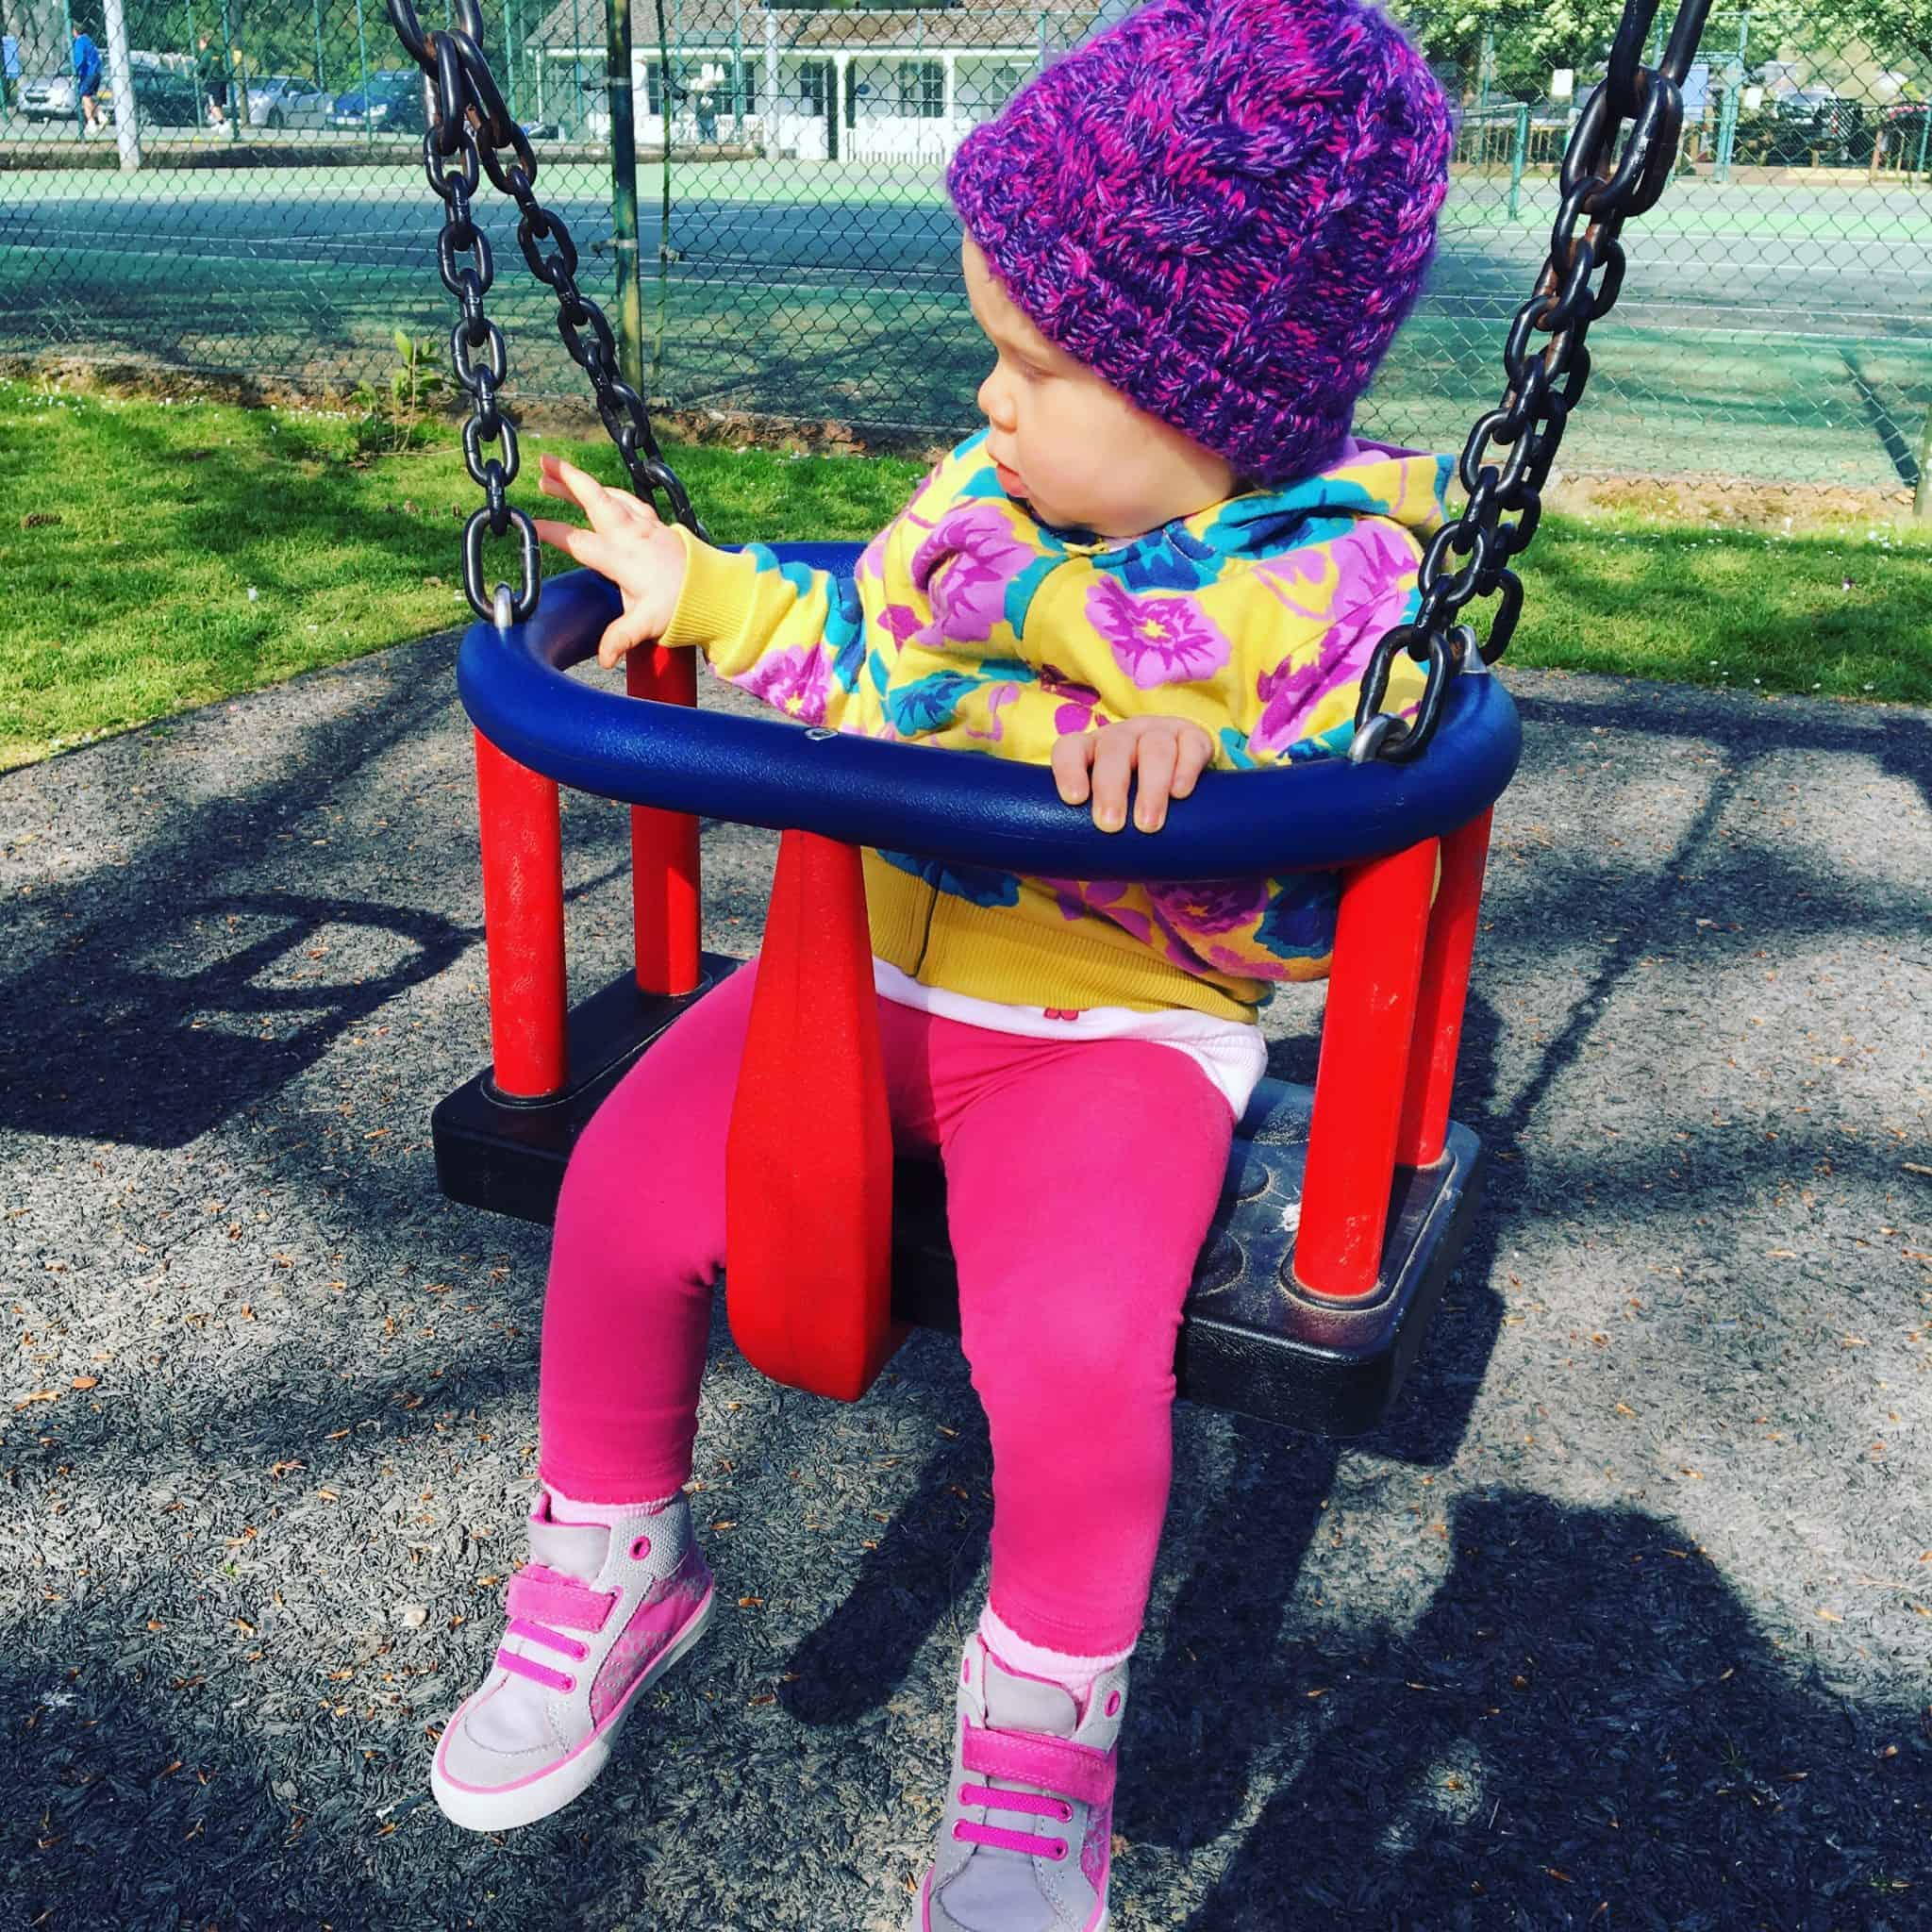 Baby girl on the baby swing at the park